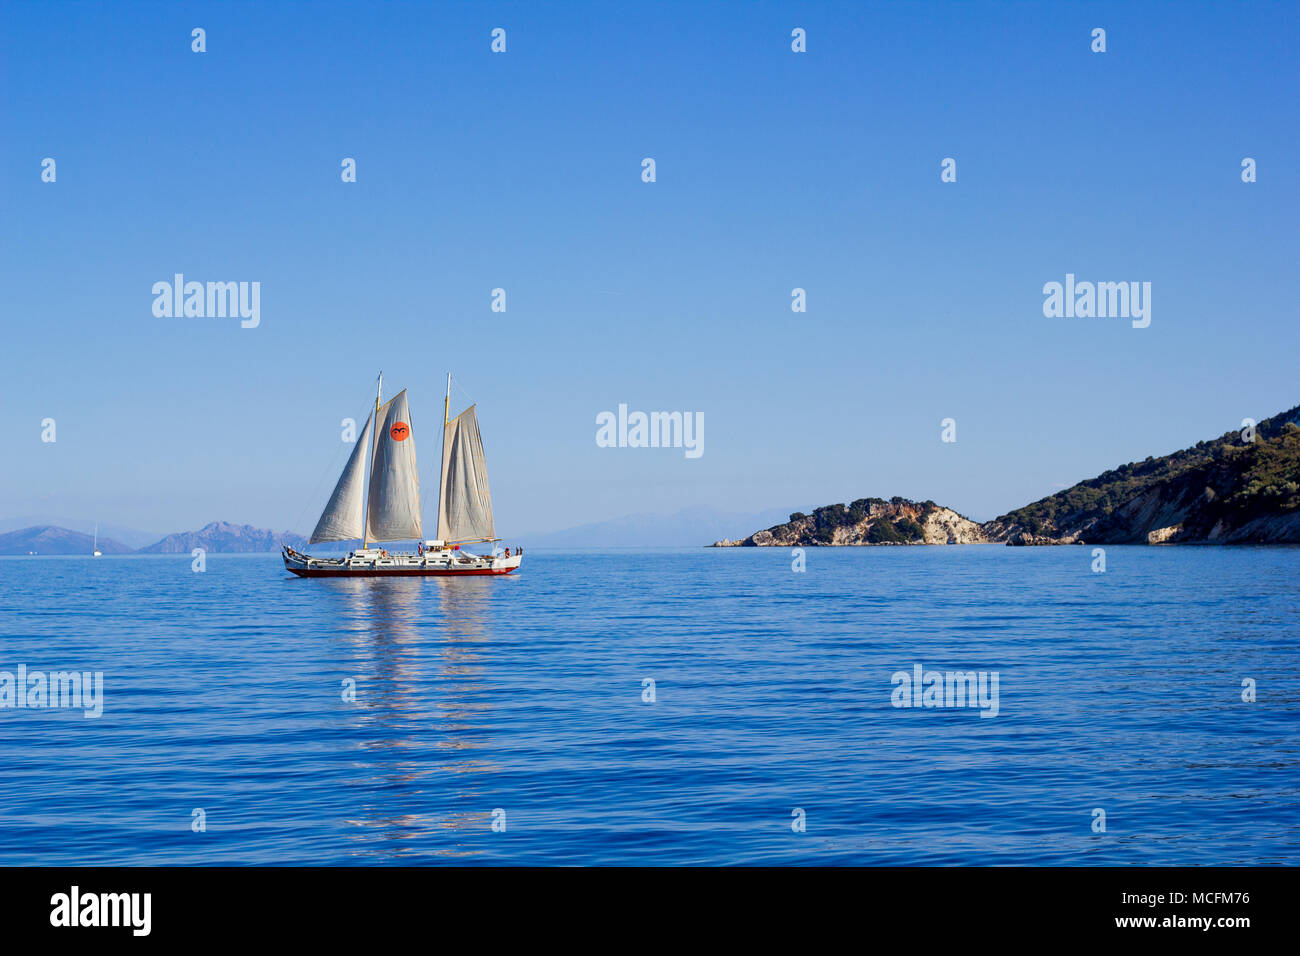 Long Sail Boat with sails up - Stock Image